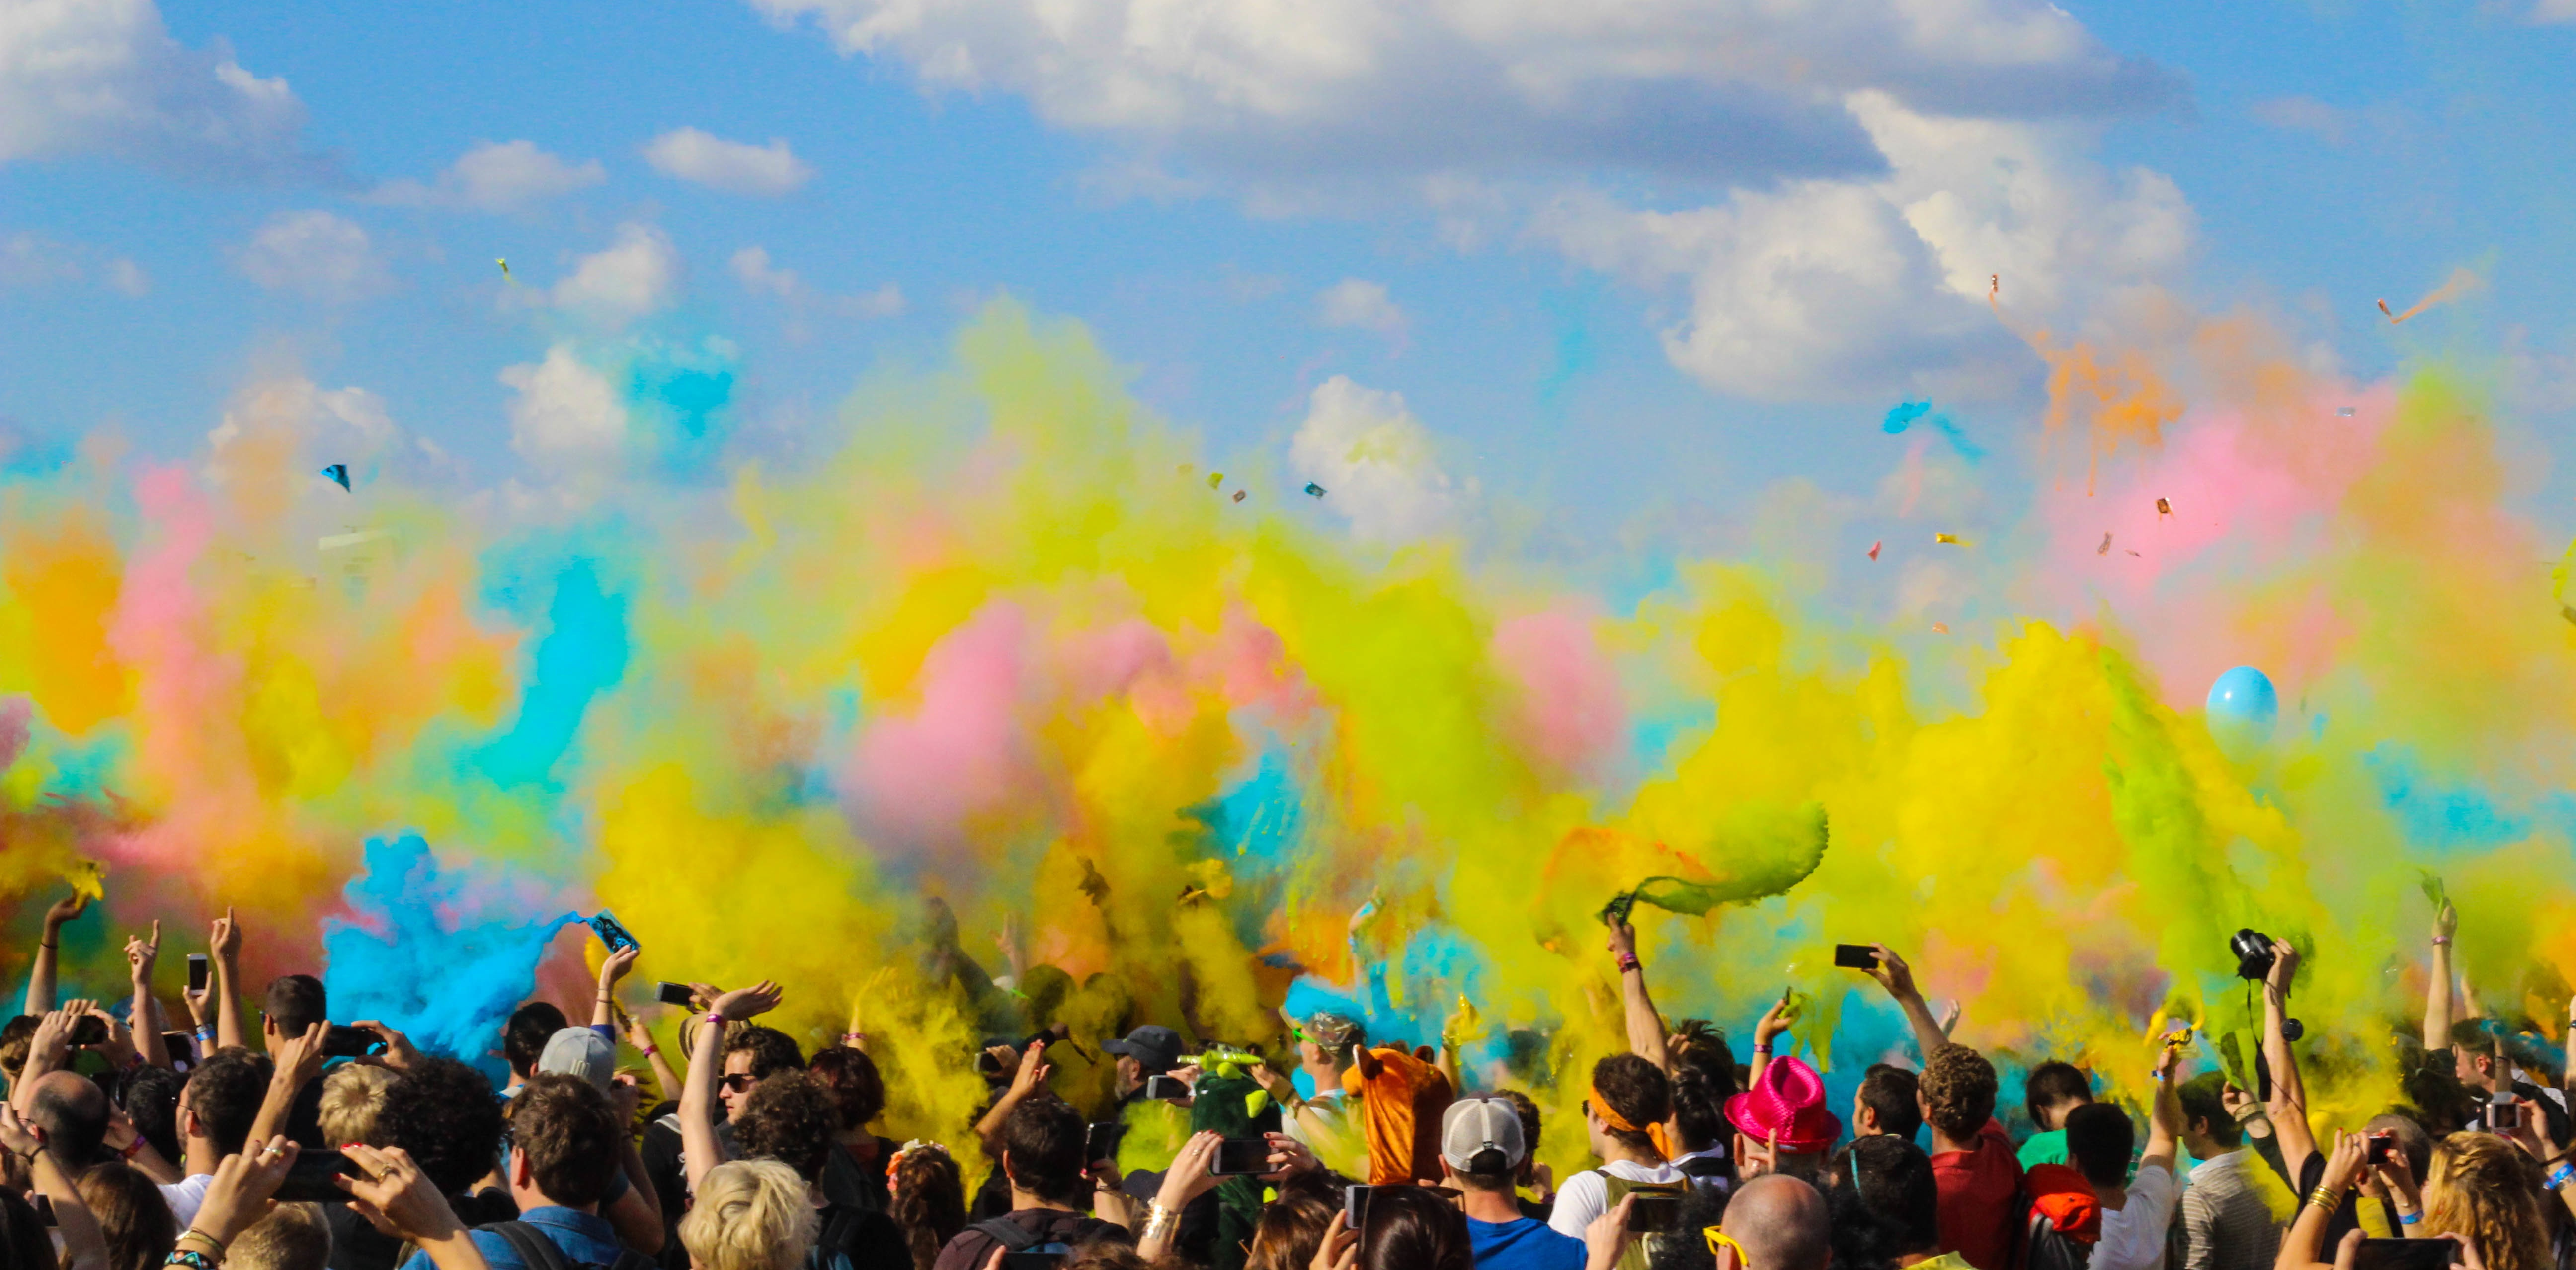 A_crowd_at_a_concert_with_colorful_smoke_bombs_floating_above_them.jpg